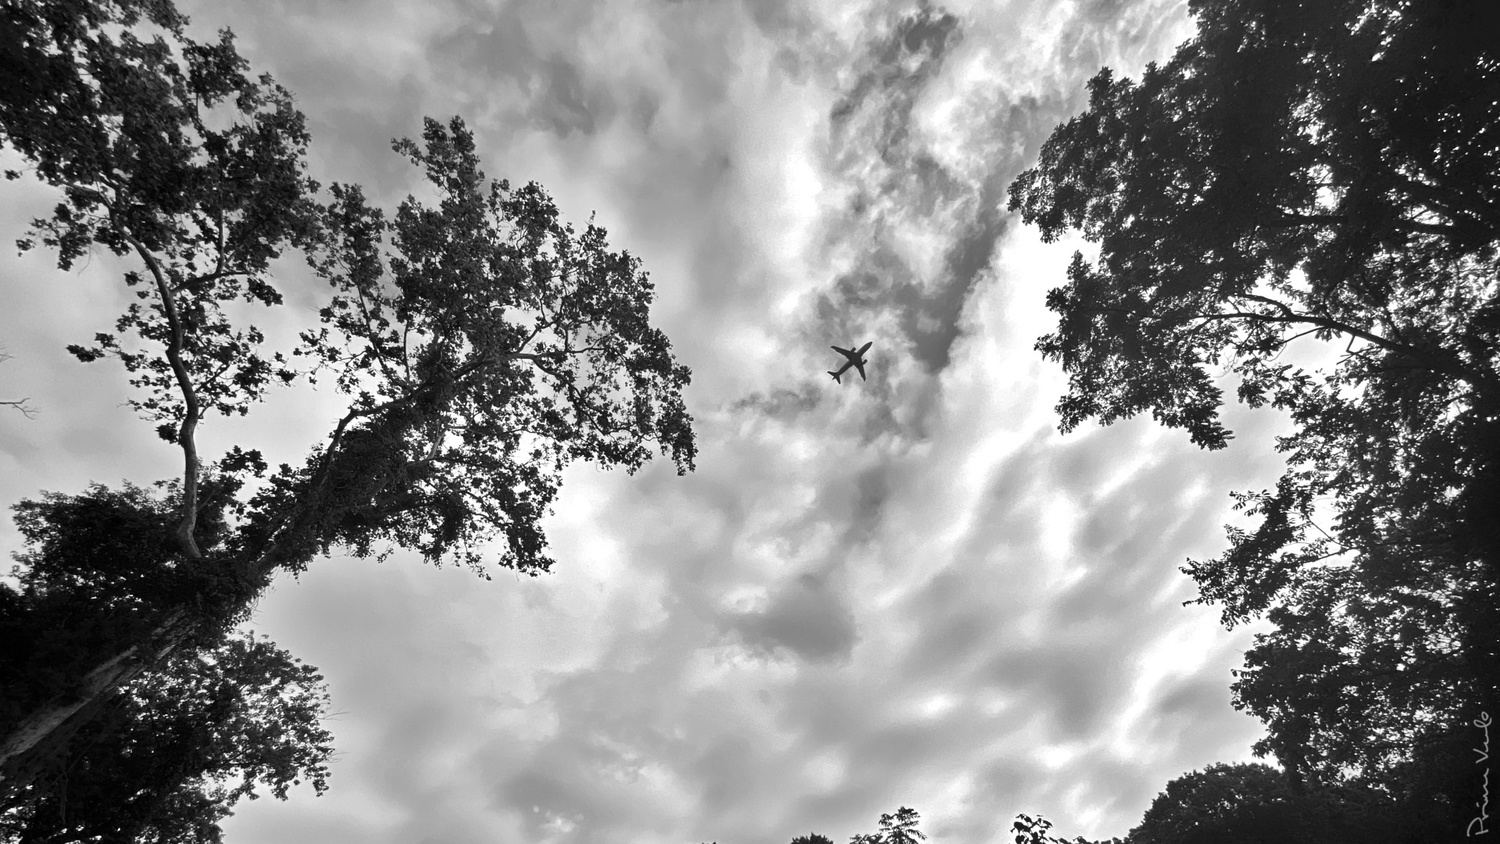 Airplane Overhead b/w by Warren Marquez